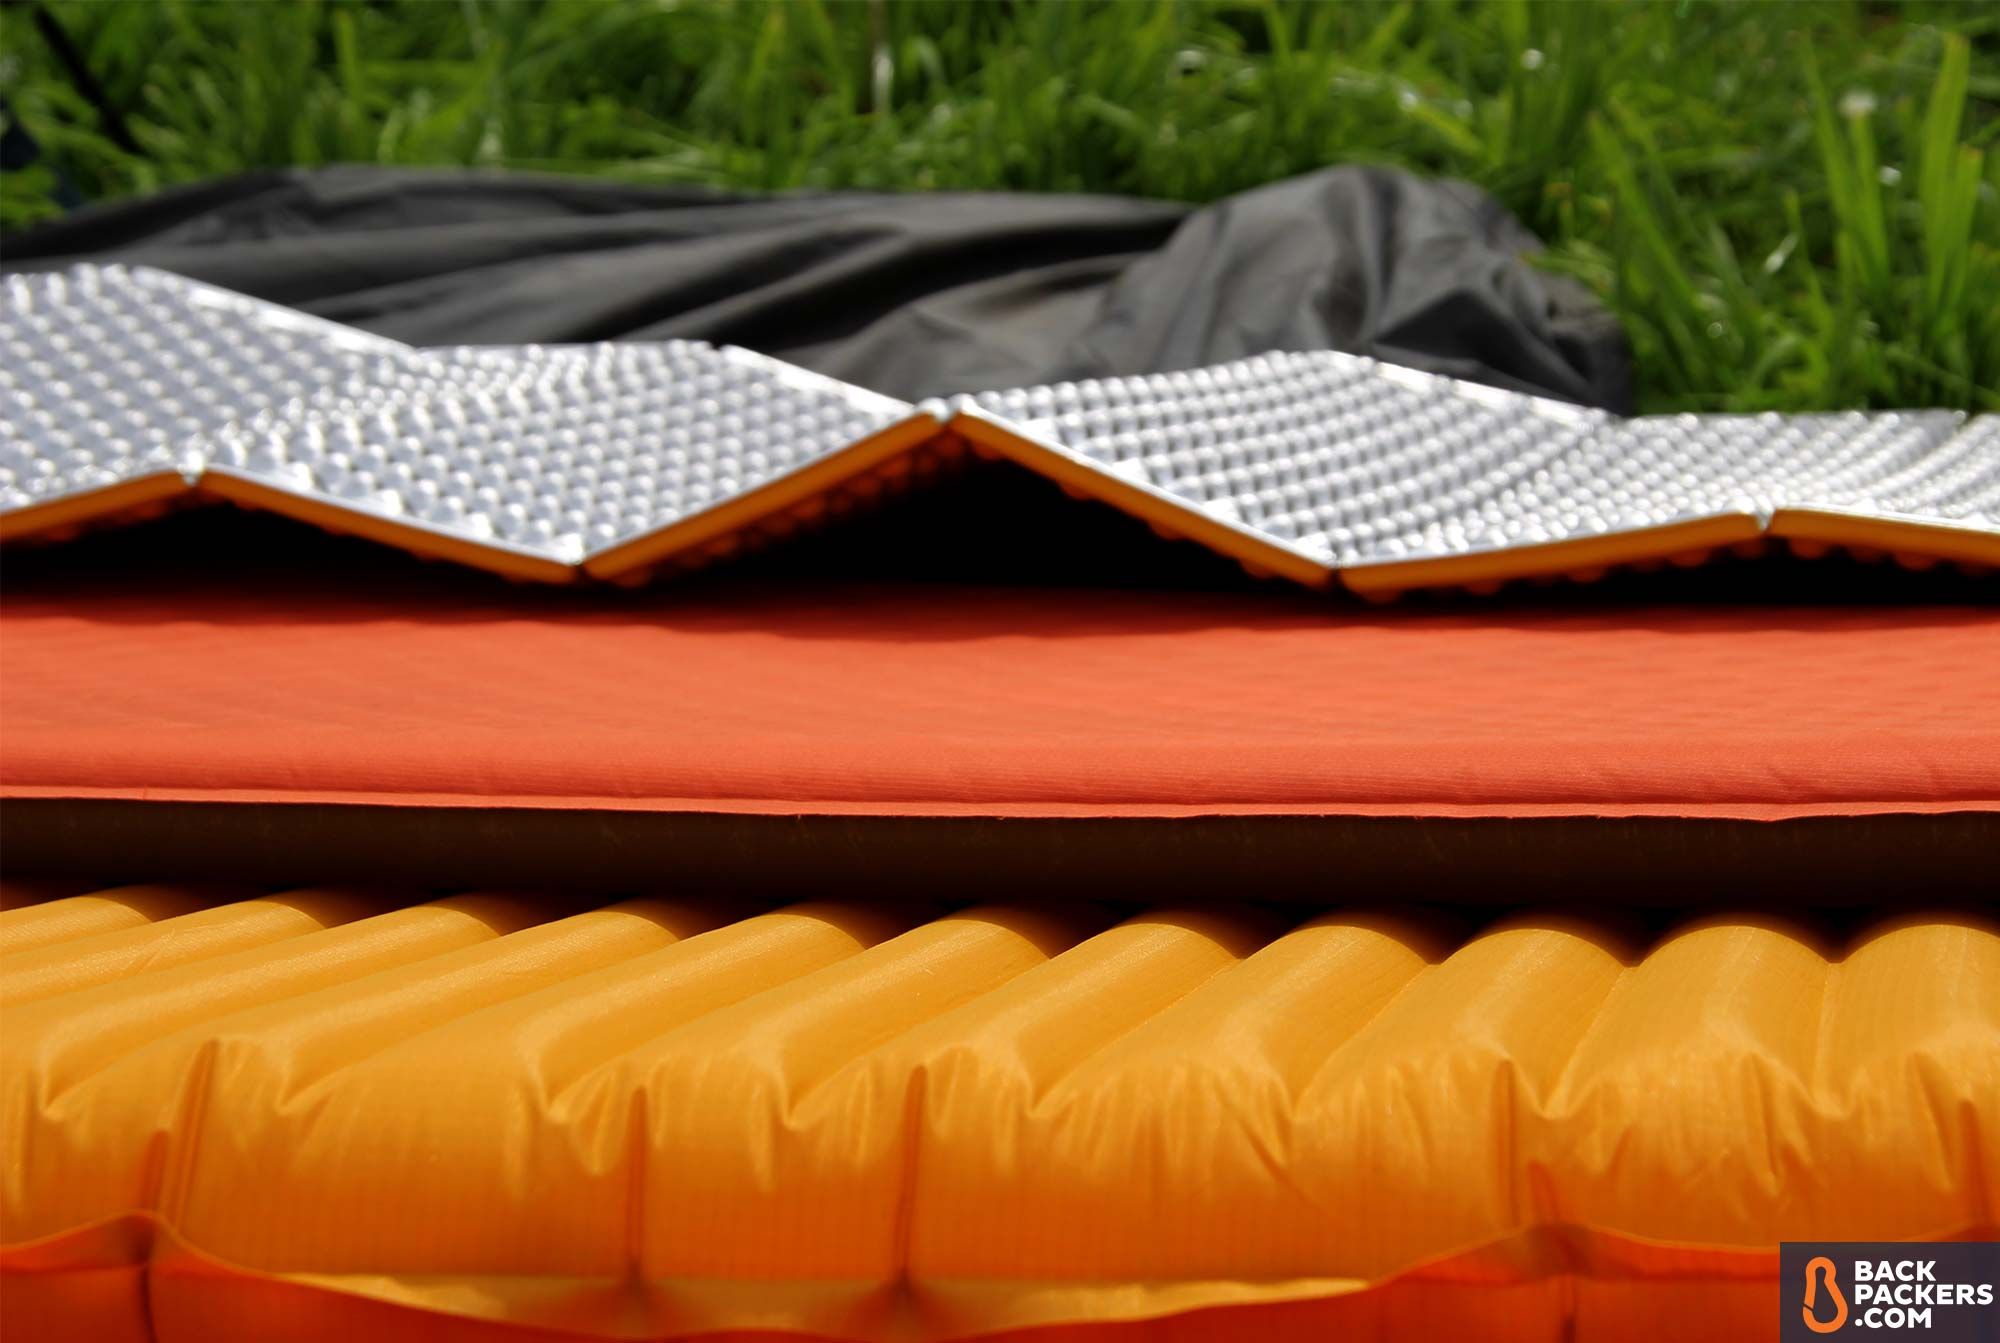 Sleeping Pad Guide Outdoor Gear Guide Backpackerscom